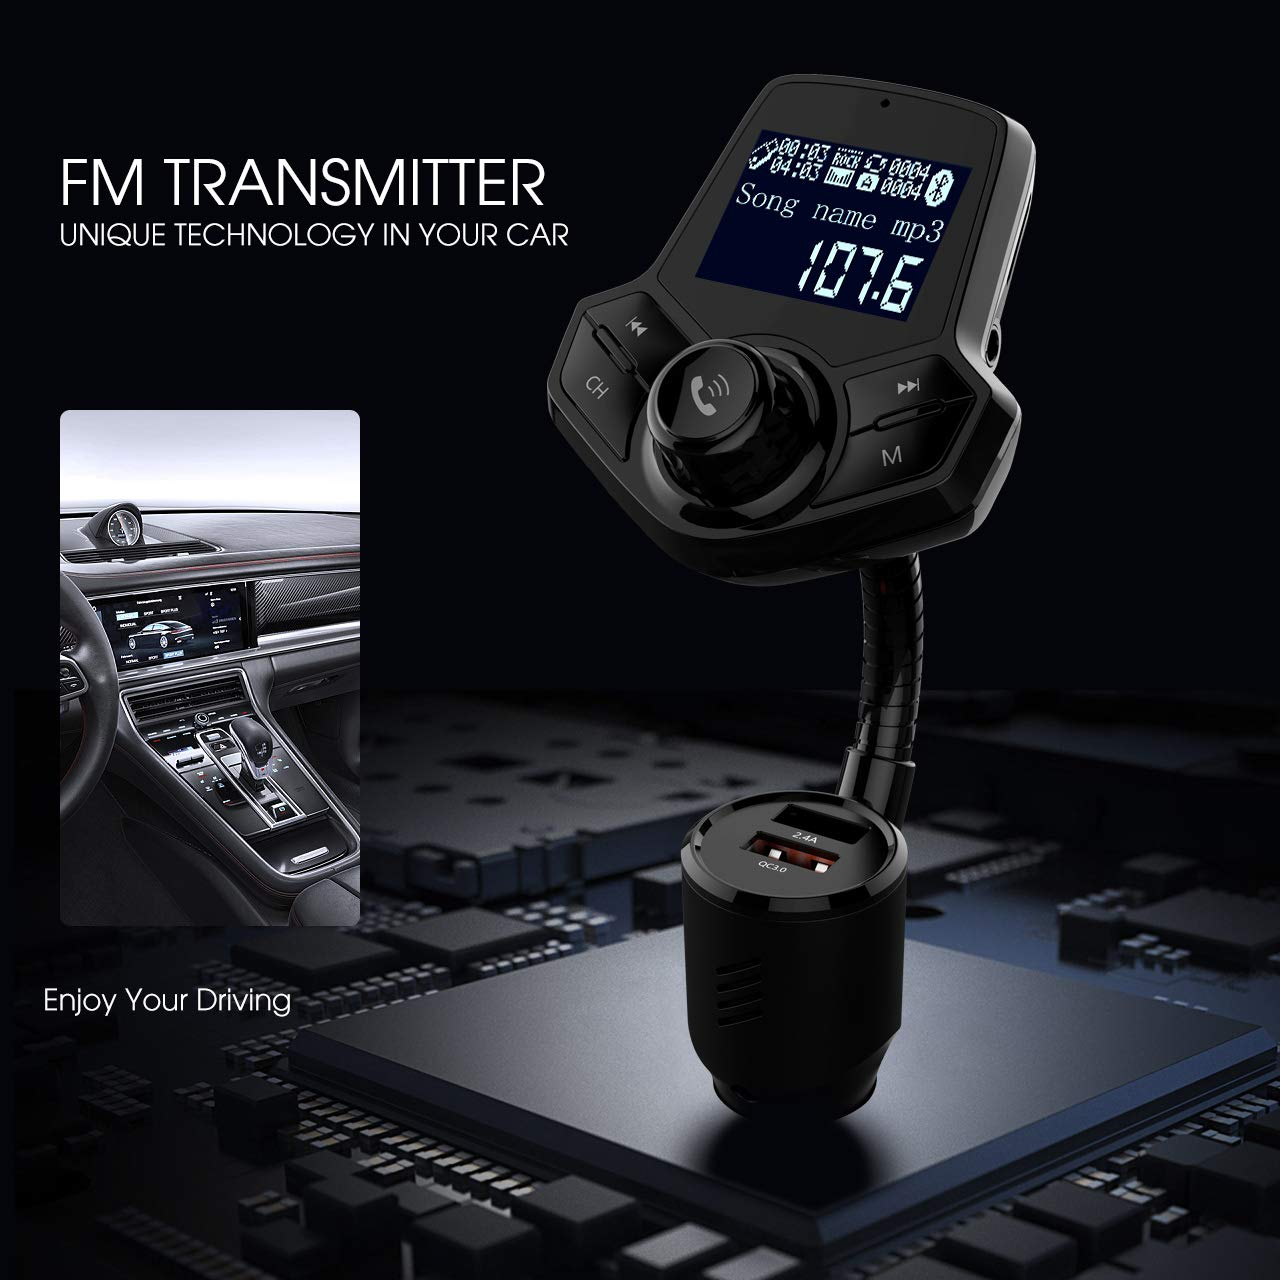 in-Car Bluetooth FM Transmitter Wireless Radio Adapter Hands-Free Car Kit with 1.44 Inches Display TF Card Mp3 Player Dual USB Ports AUX Input//Output Voltmeter Function for Smart Phones Audio Players